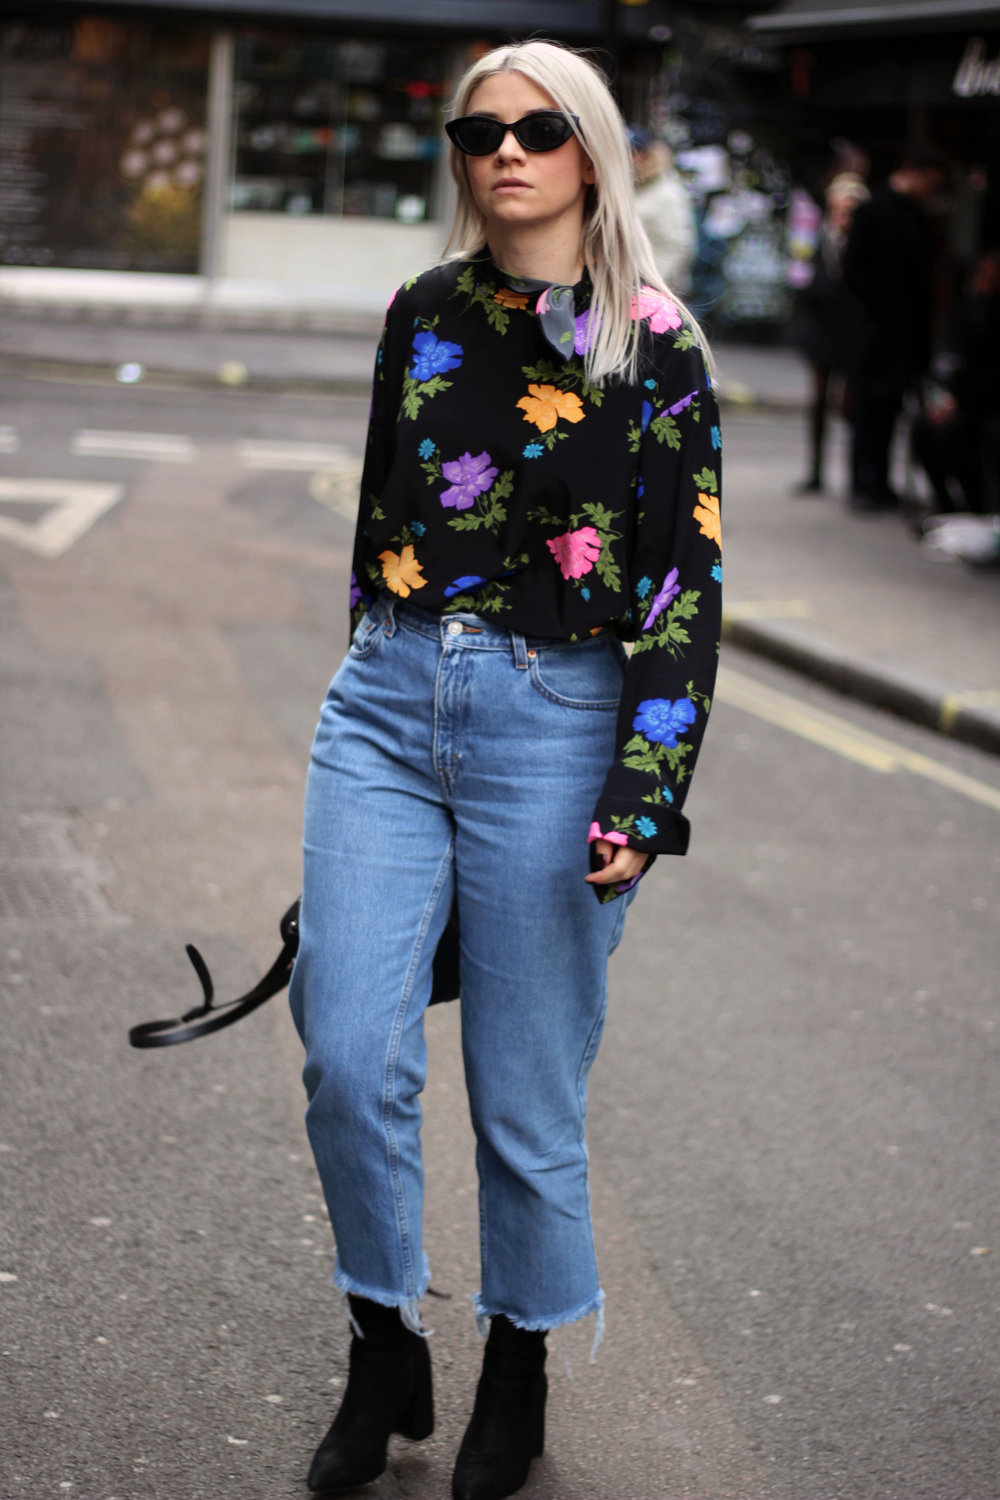 Topshop boutique silk blouse, blogging with a full time job, northern magpie, joey taylor 6